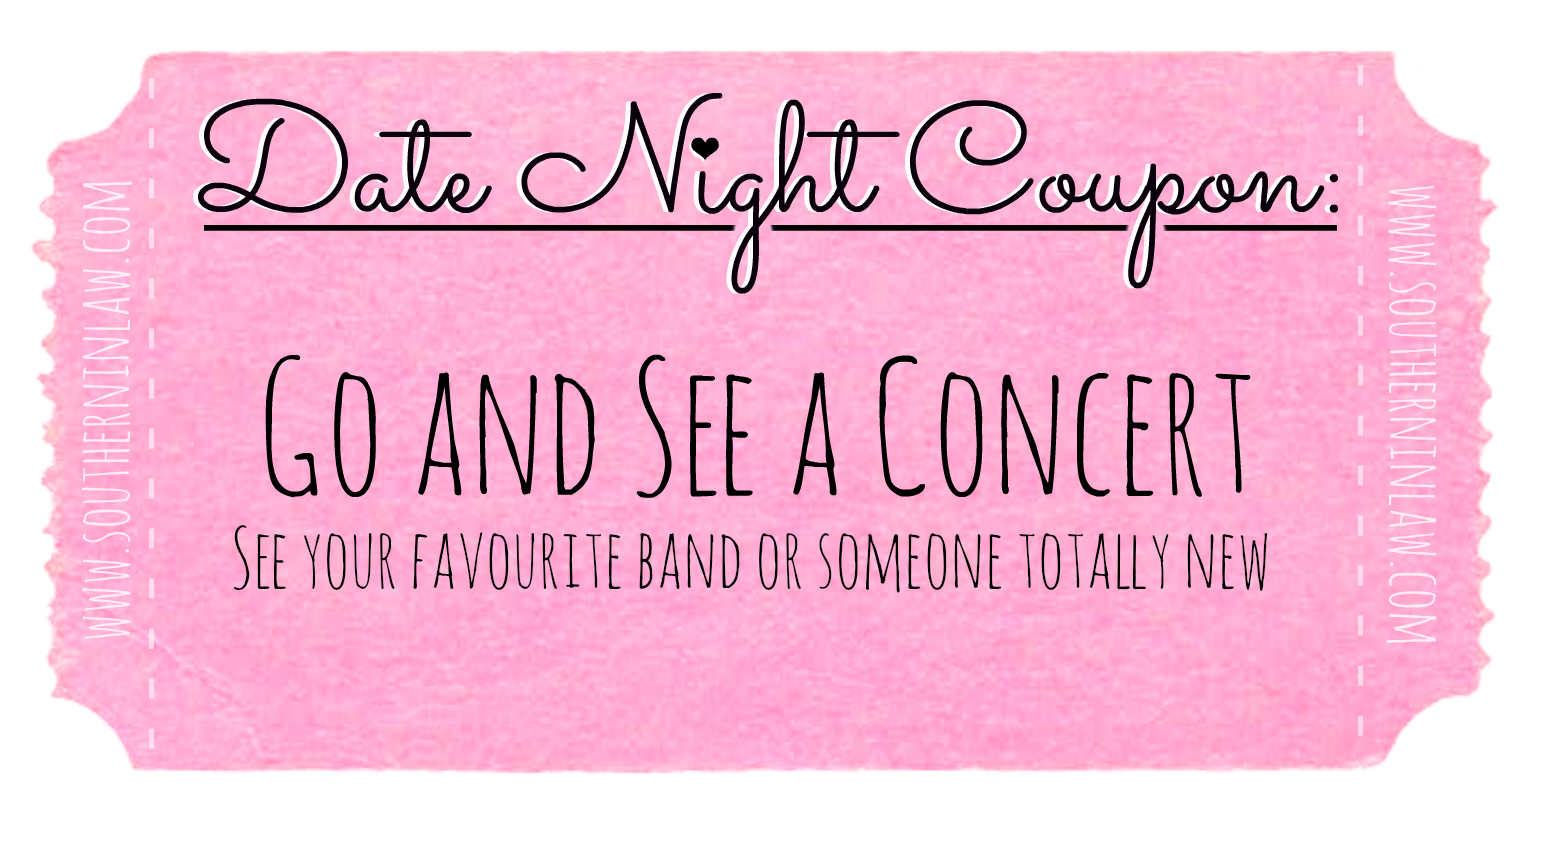 Affordable Date Ideas - Date Night Coupons - Go and See a Concert